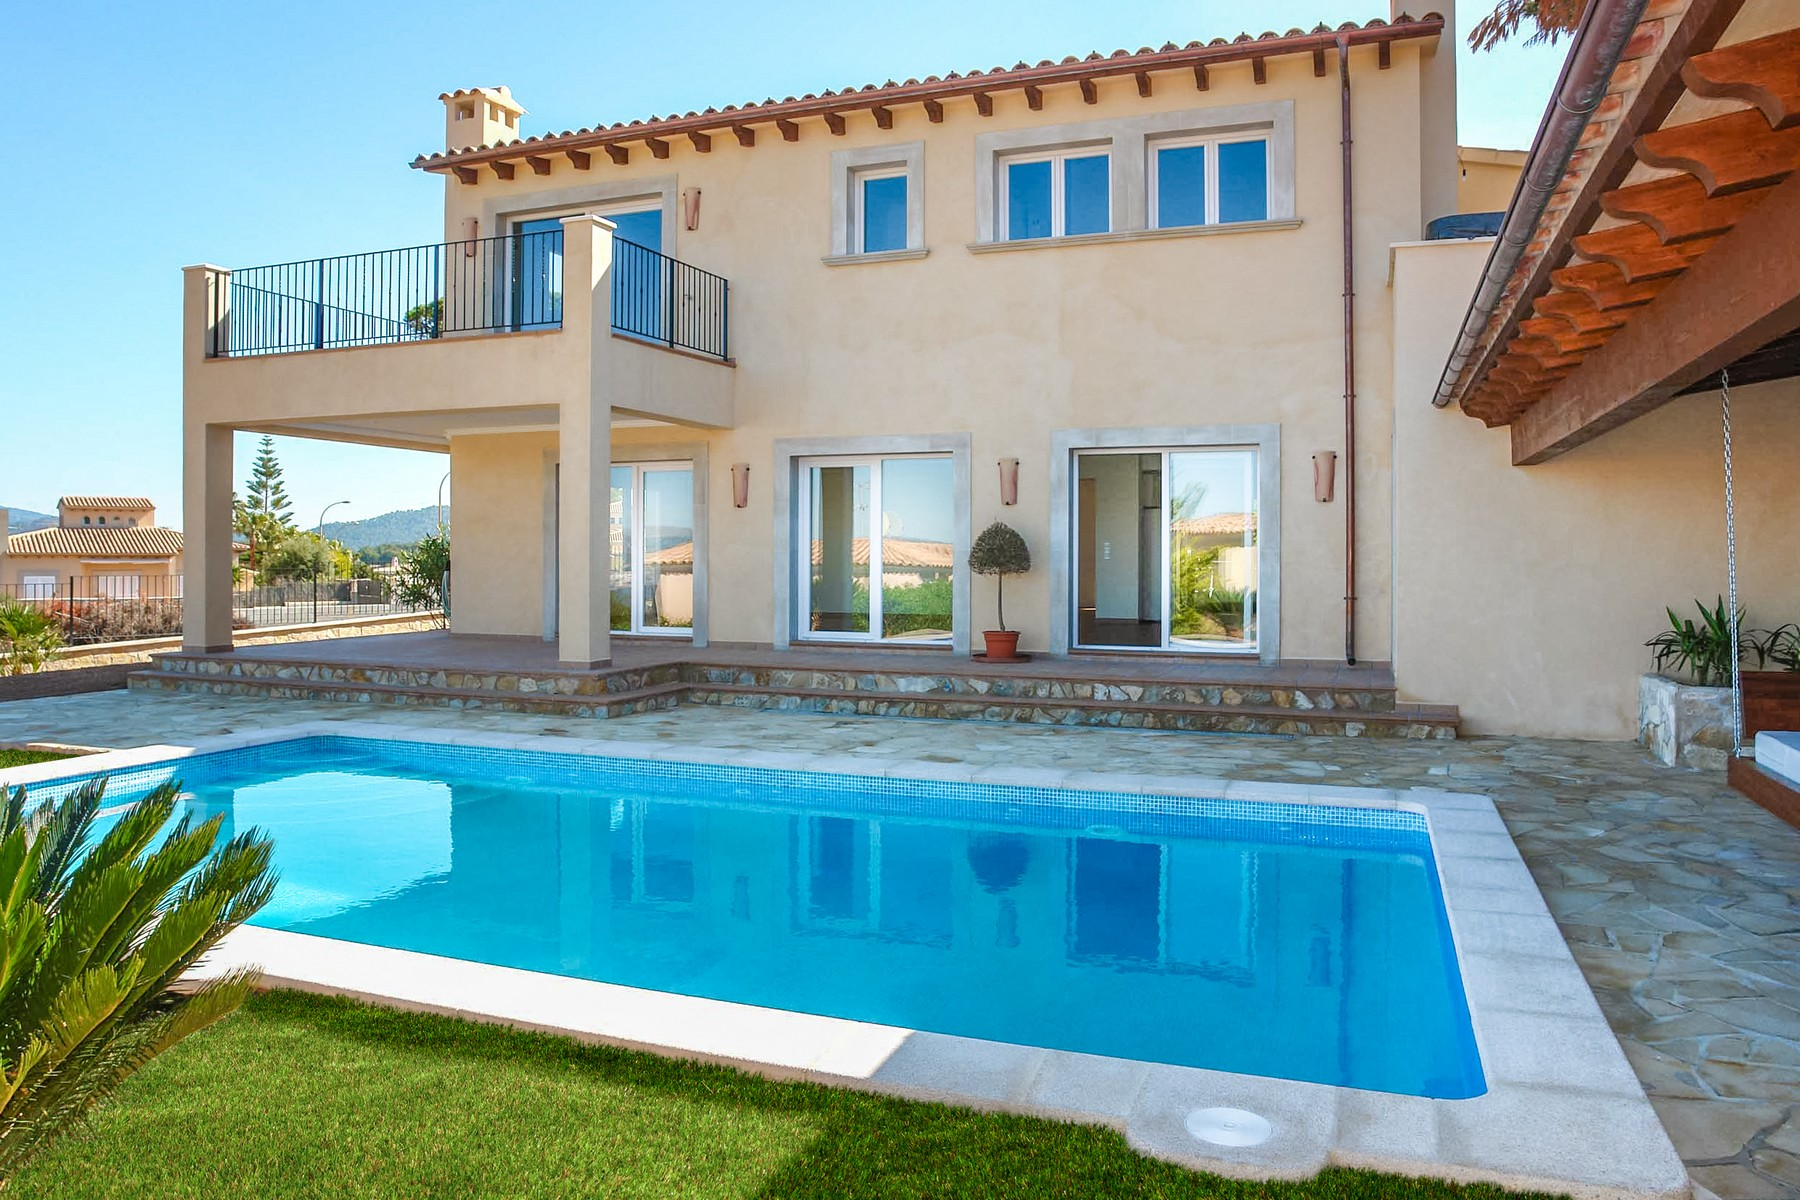 Single Family Home for Sale at Newly built villa in residential area Santa Ponsa, Mallorca 07180 Spain